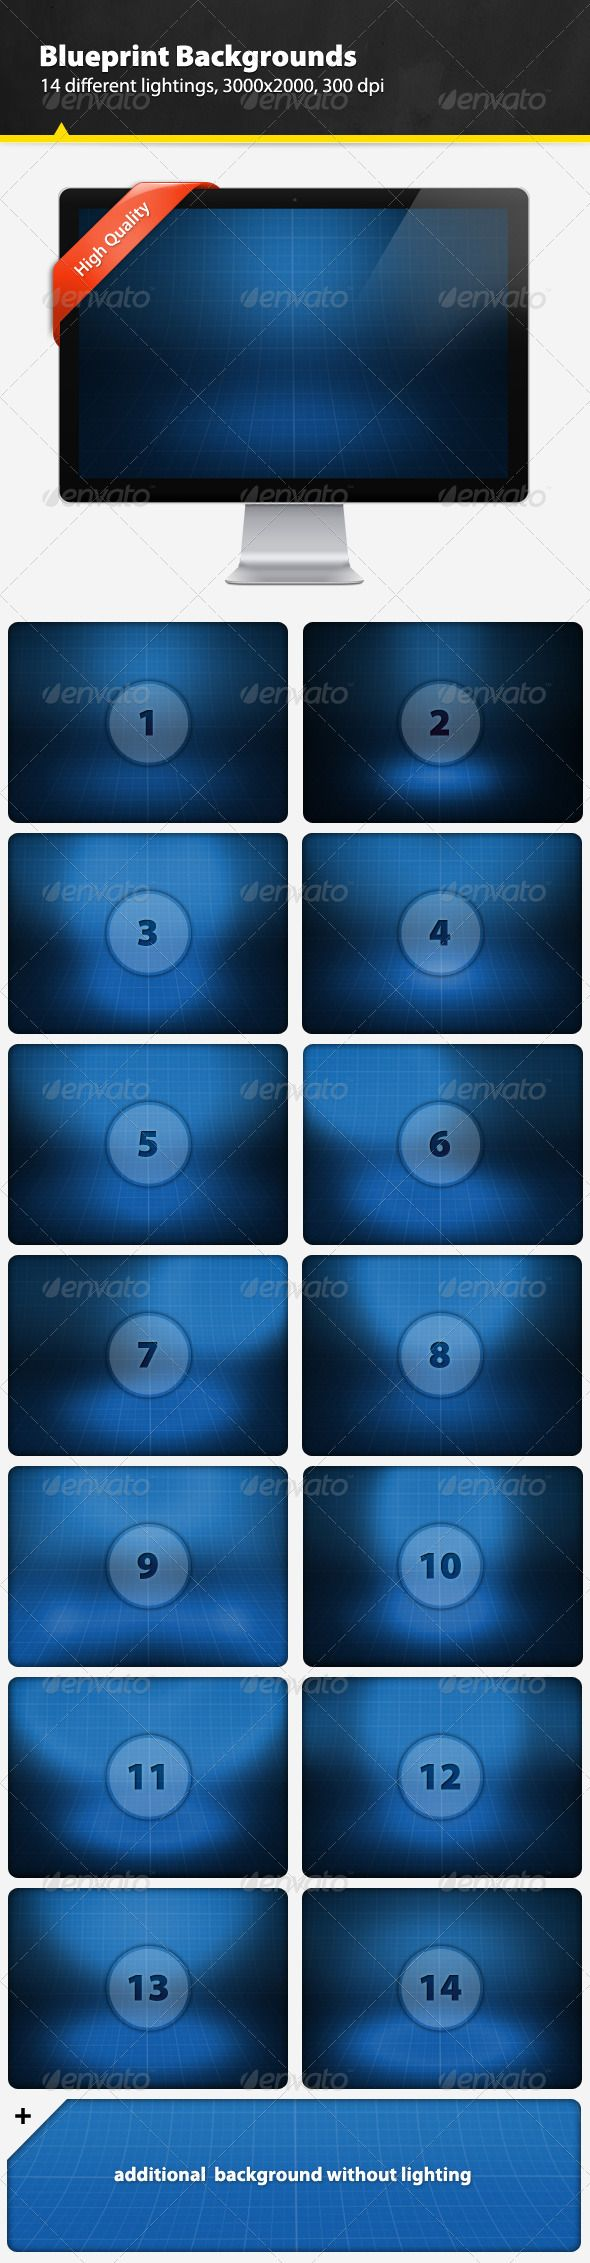 Blueprint Backgrounds  #GraphicRiver                	 High quality blueprint backgrounds in 15 different lightings. Can be used in product presentations, mock-ups, web design & print. All backgrounds are in 3000×2000 pixels and 300 dpi.  This file contains:  15 different lightings blueprint backgrounds  3000×2000 pixel resolution  300dpi  separate jpg's  layered psd  Recommended Items    9 Hand-Picked Logo Templates Of The Week ( more… )          Looking For Graphics?                 Looking…